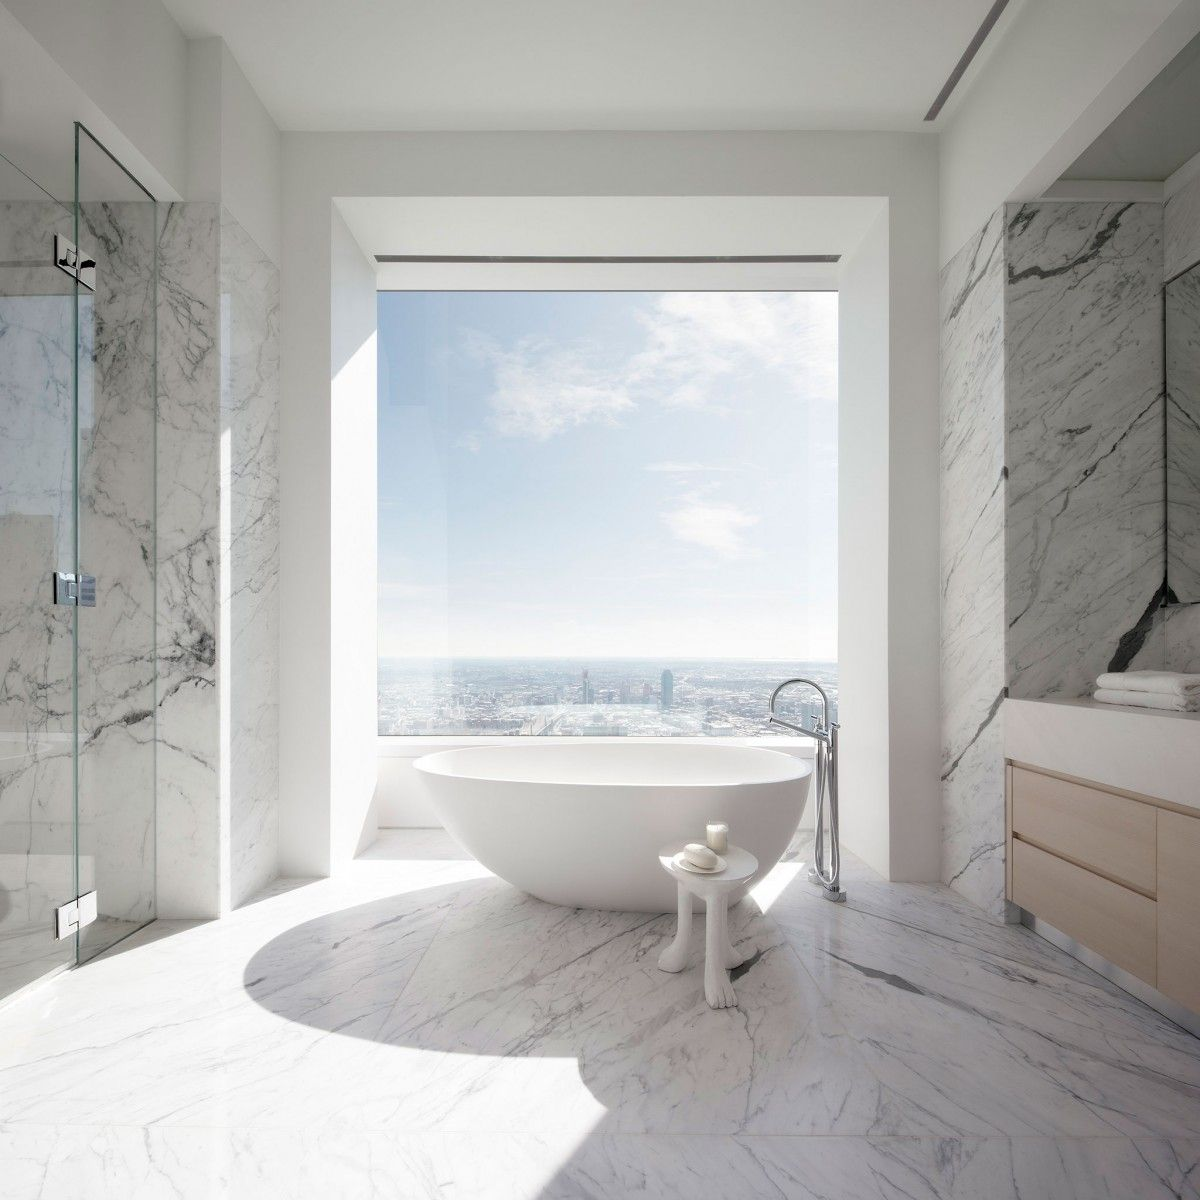 New Images Reveal 432 Park Avenue\'s Luxury Amenity Spaces | Tubs ...